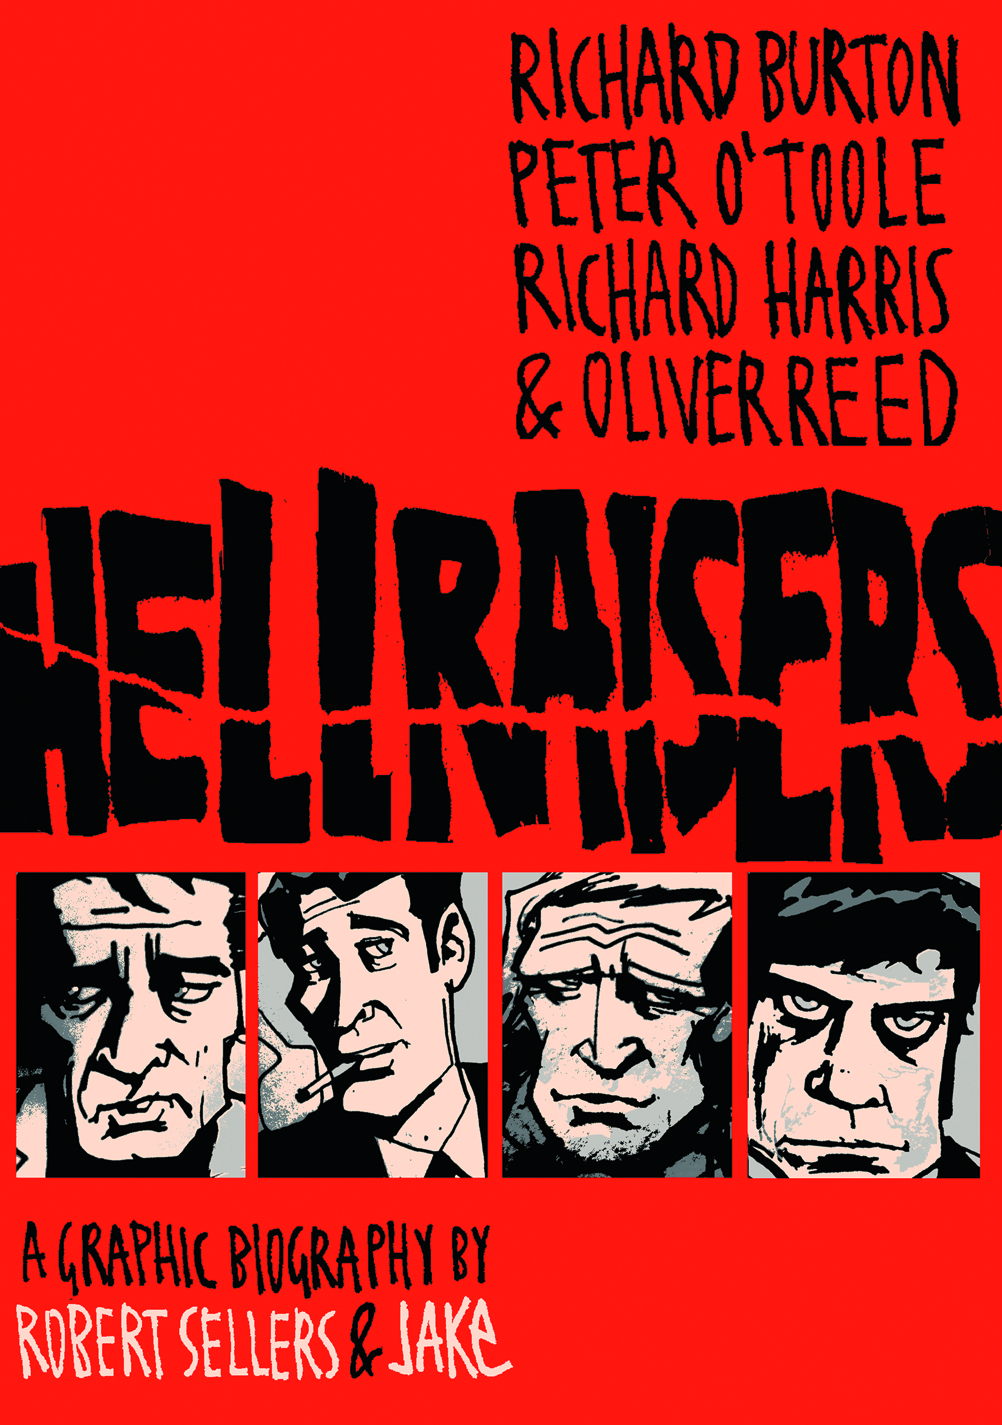 HELLRAISERS GRAPHIC BIOGRAPHIES GN